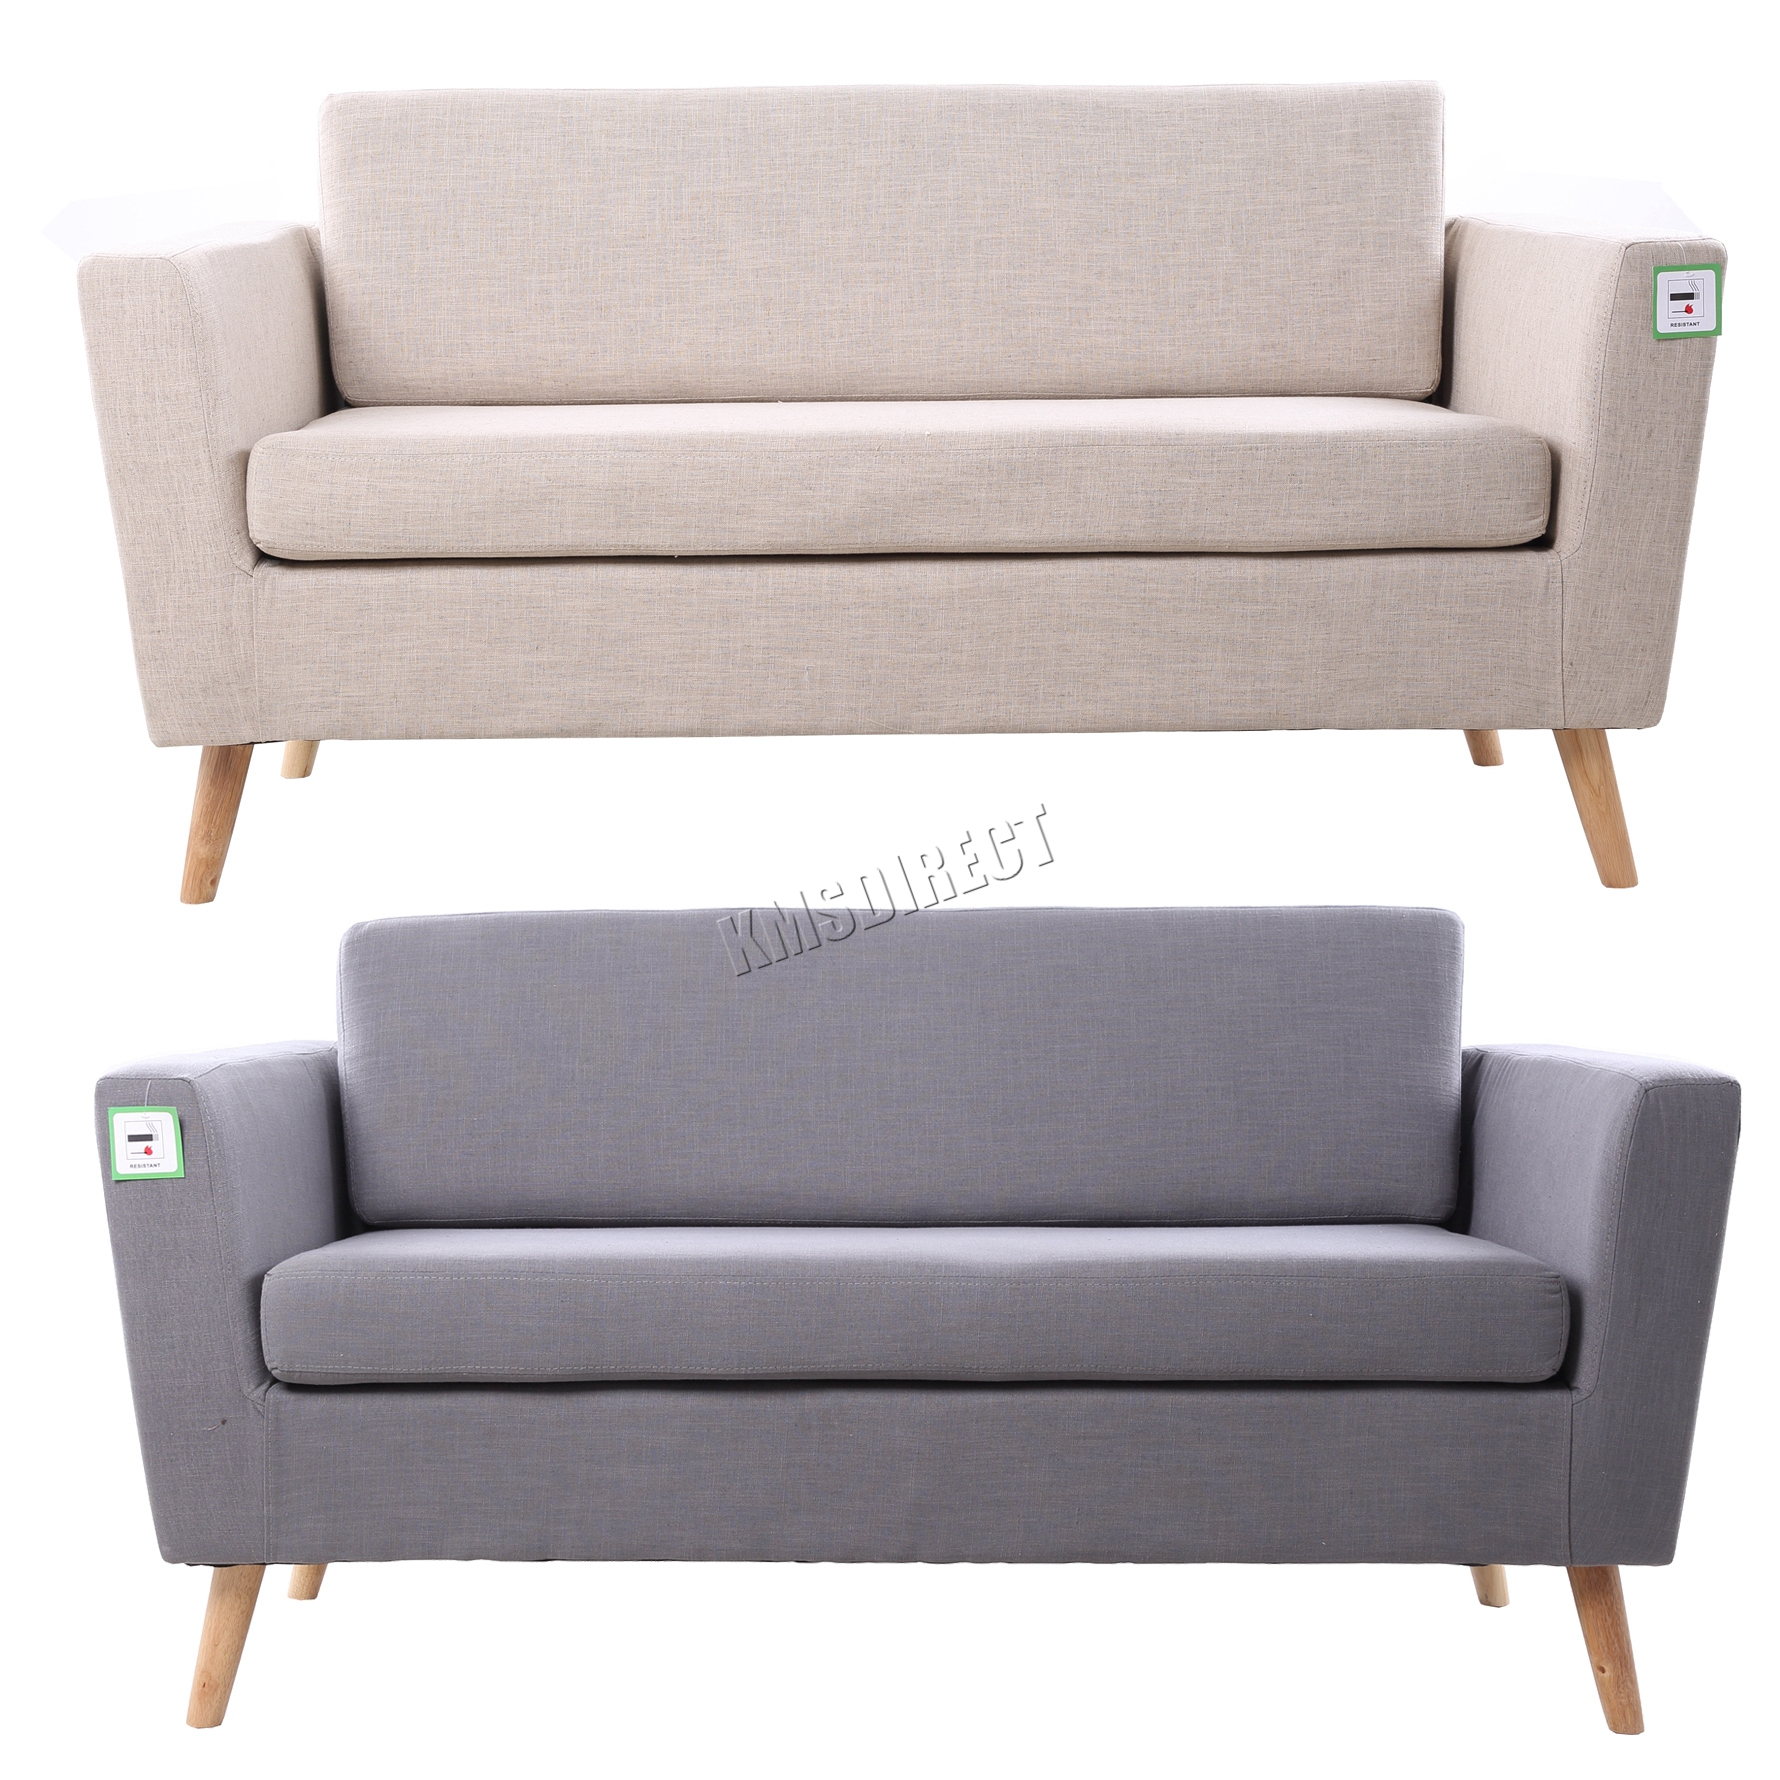 linen bench cushion sofa single chair sale foxhunter fabric 2 seat settee dining room